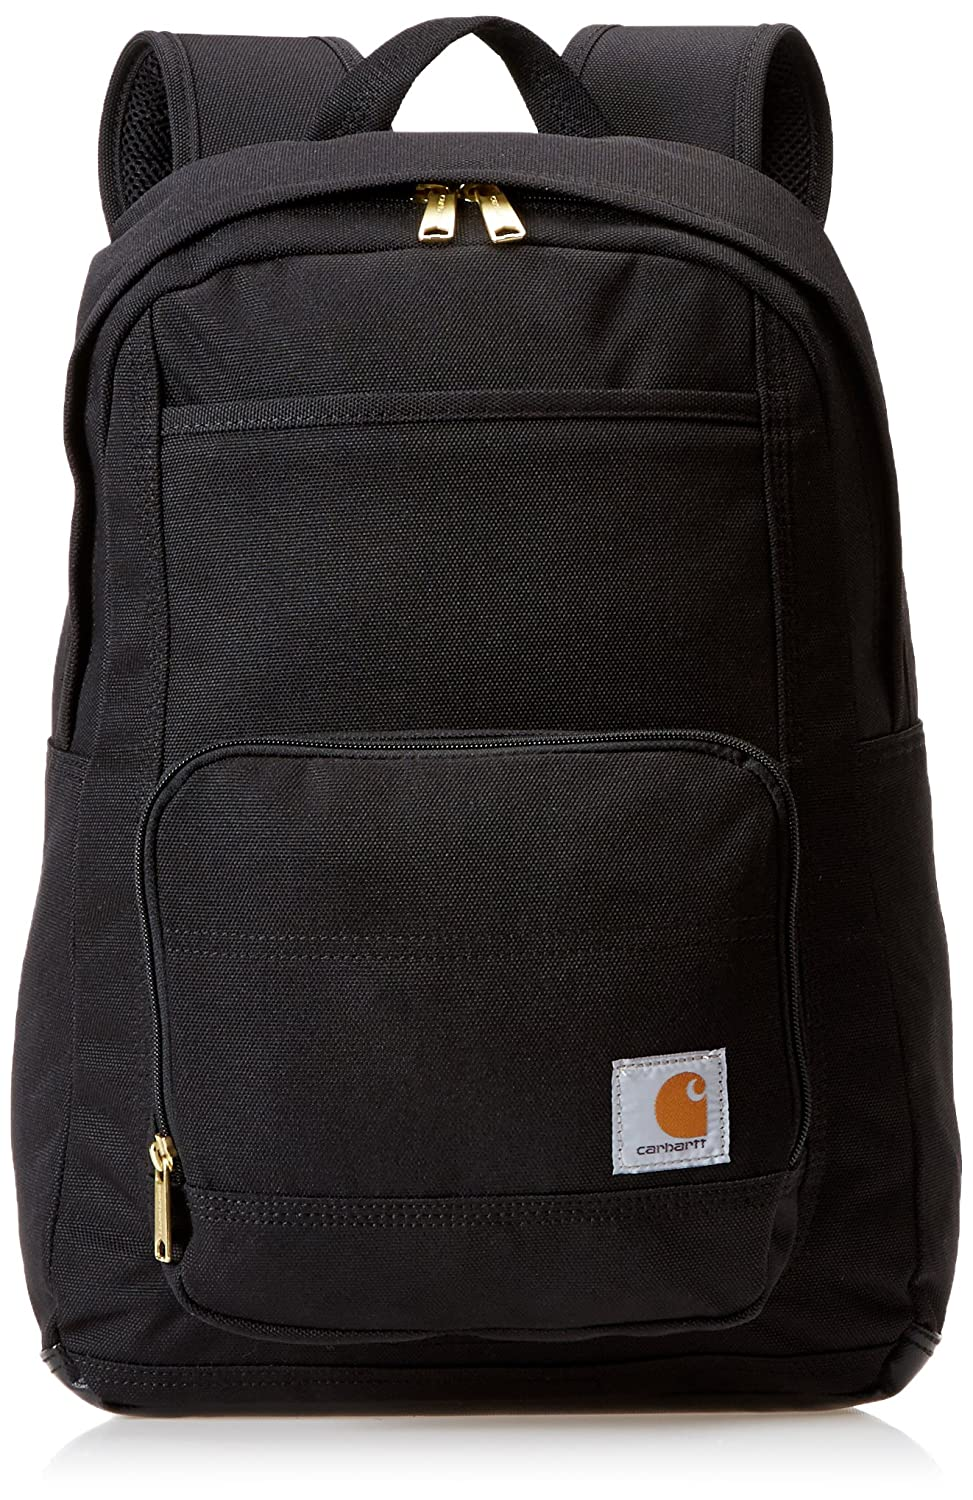 Carhartt Legacy Classic Work Backpack with Padded Laptop Sleeve, Black 5HORI 19032501